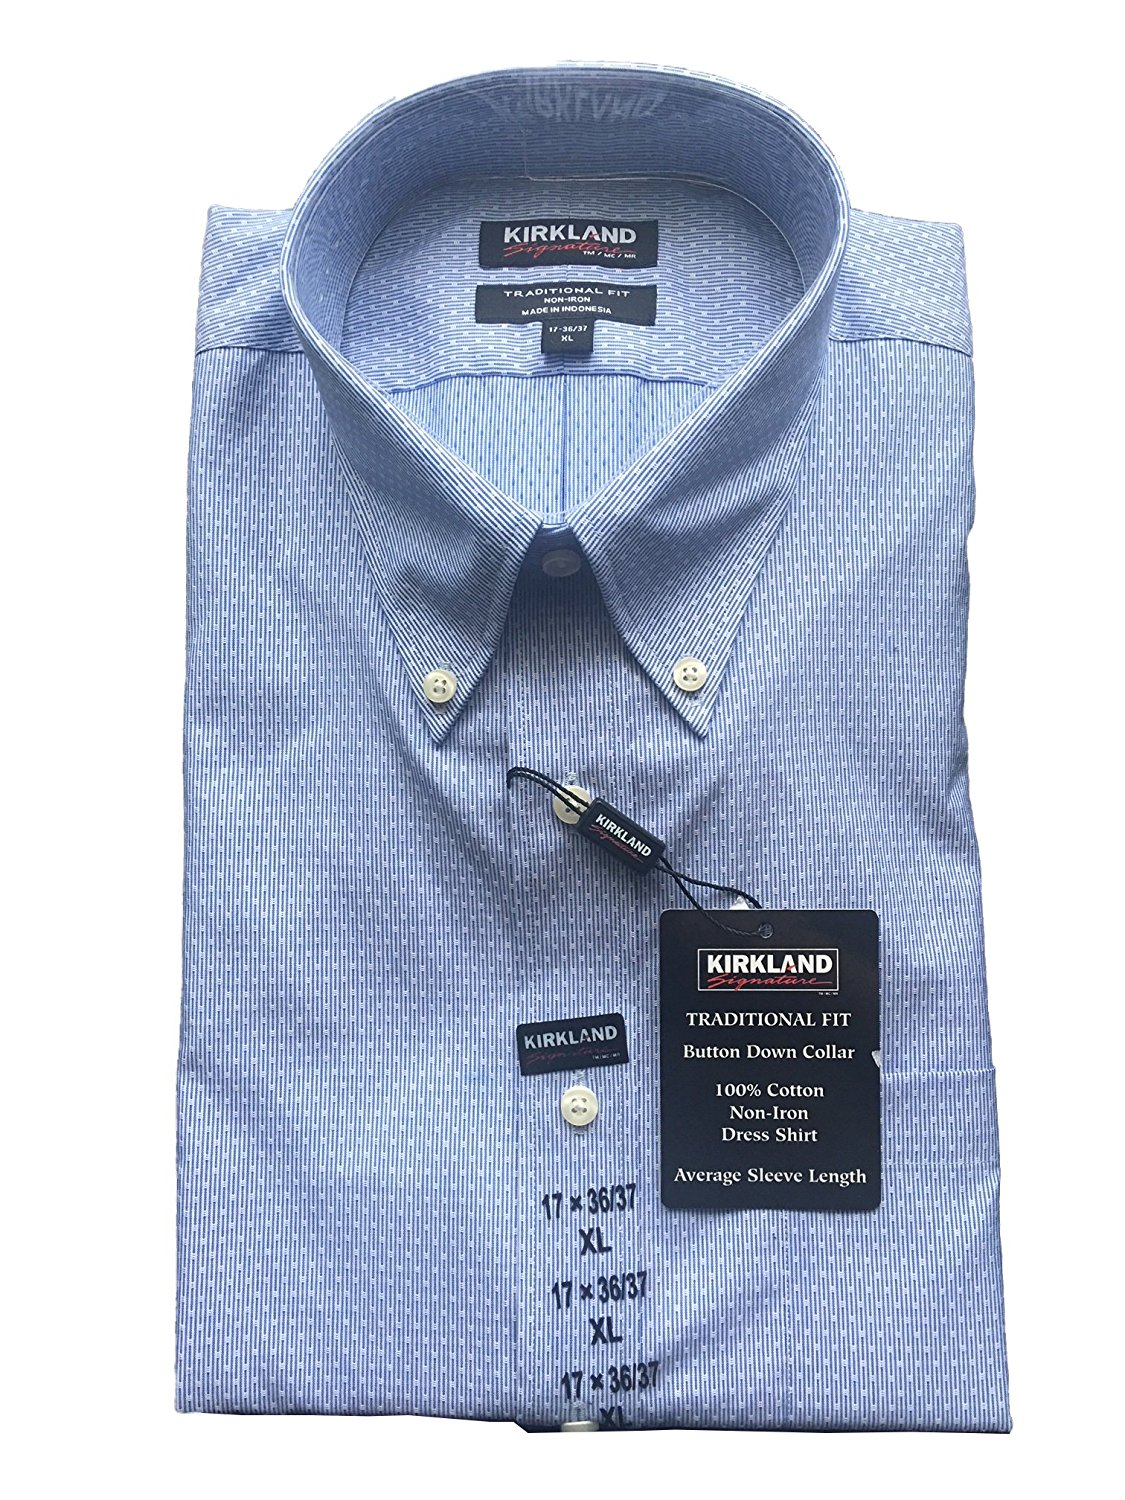 acf6cfed2eb76f Get Quotations · New Kirkland Traditional Fit Button Down Dress Shirt.  Light Blue. 17x36 37 XLarge